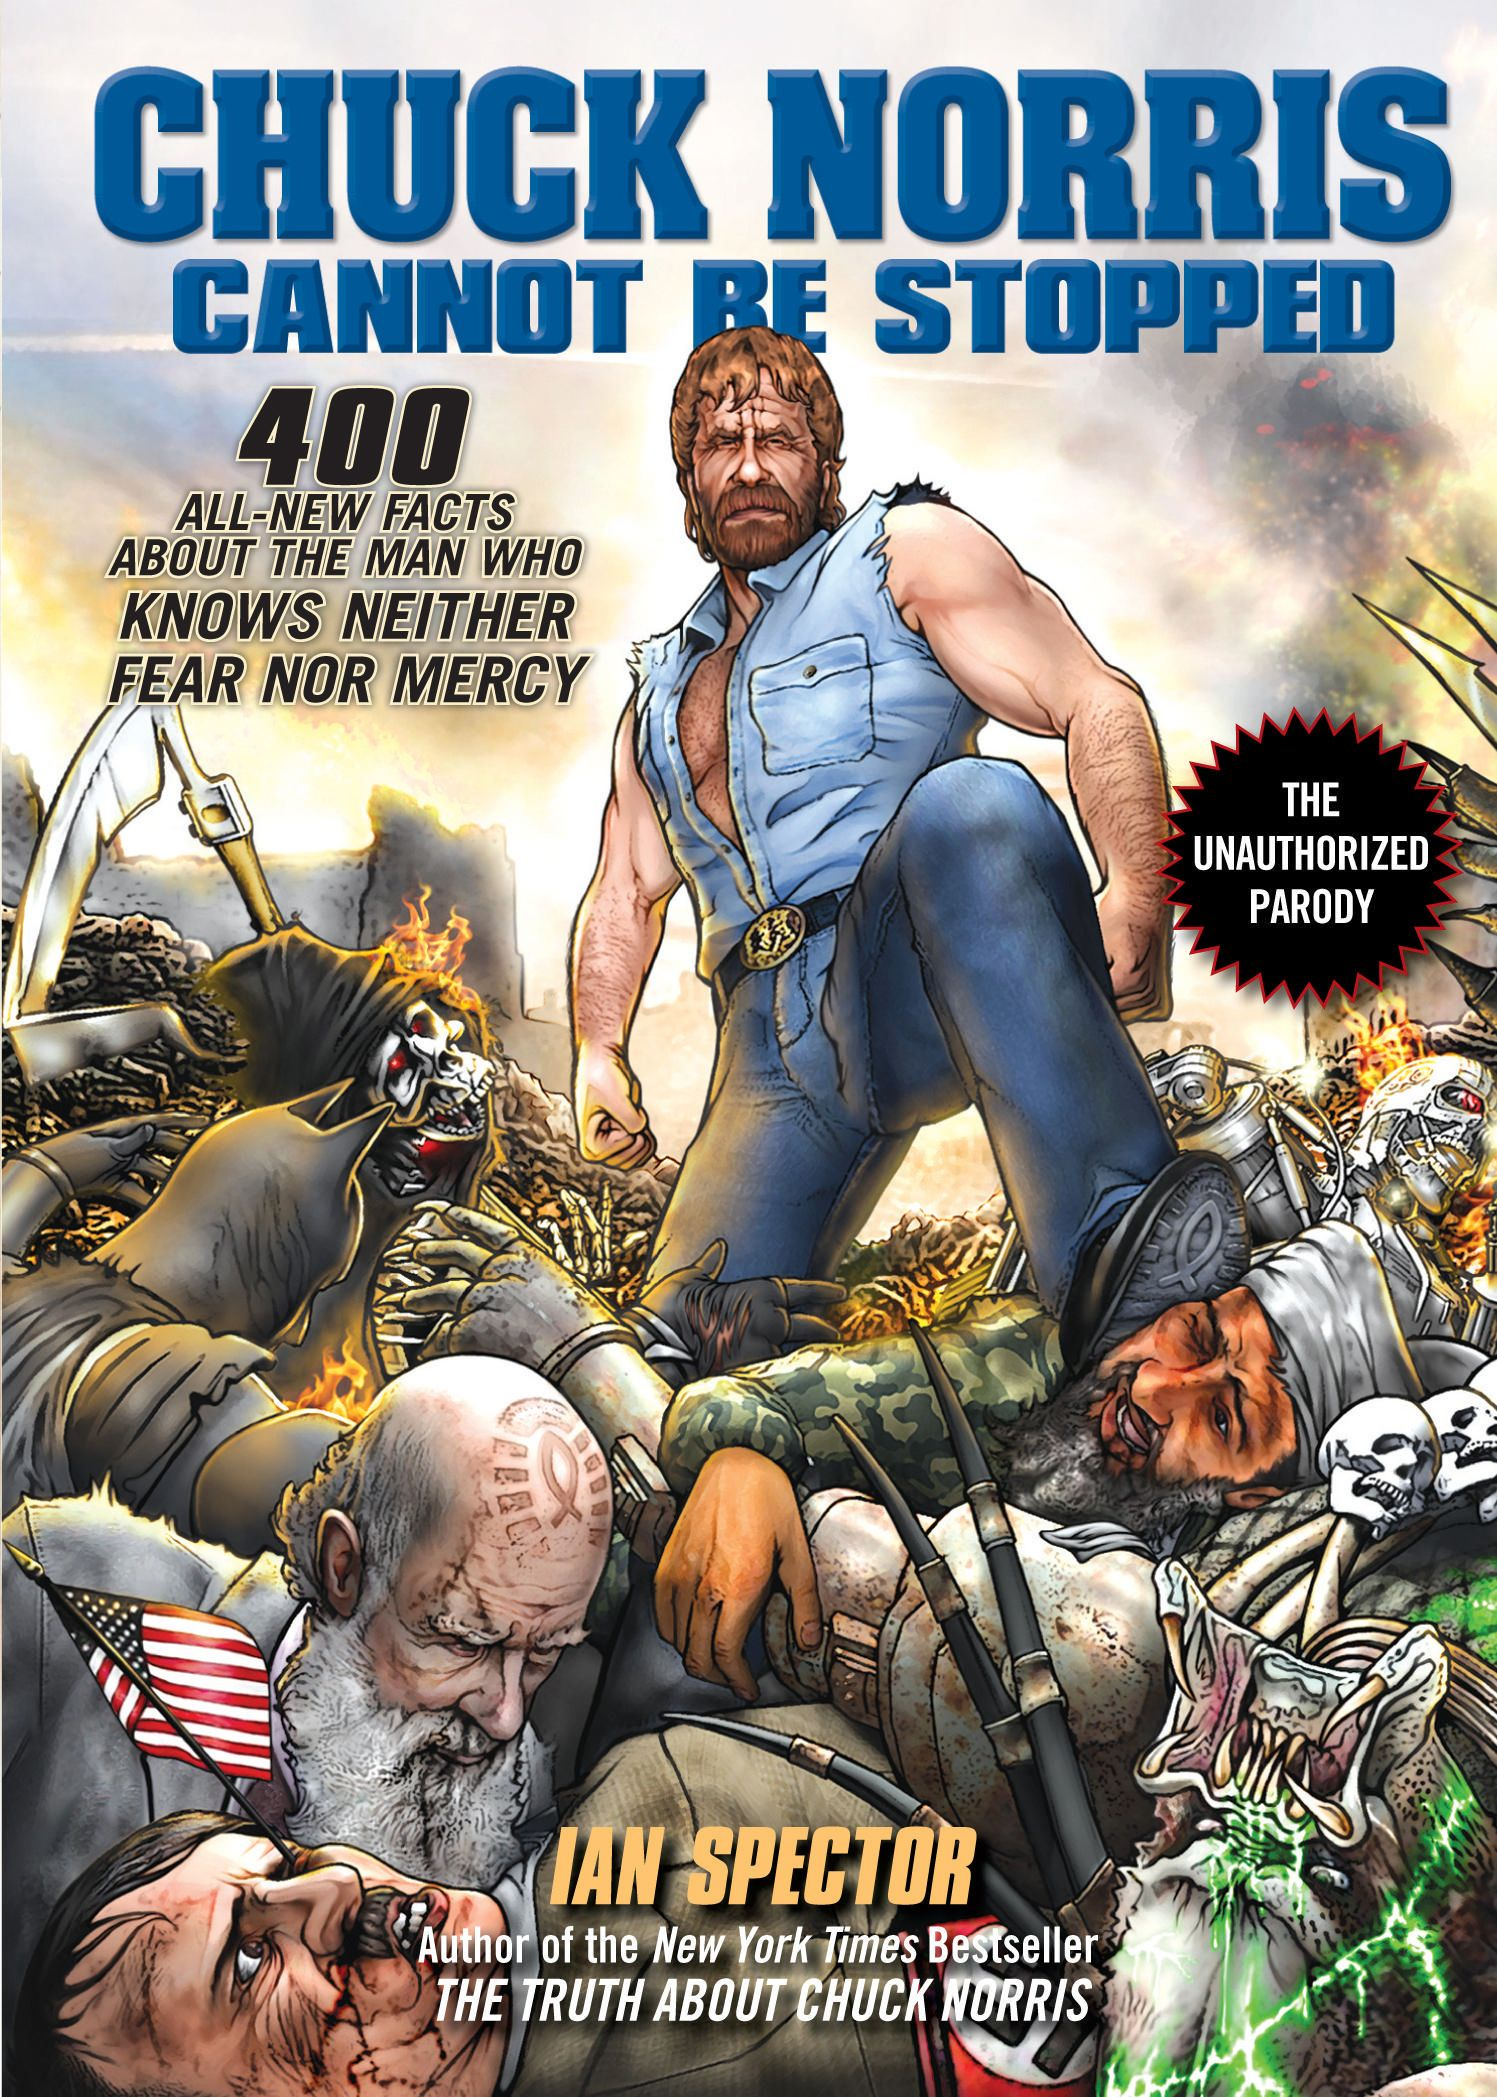 He cannot be stopped chuck norris norris books